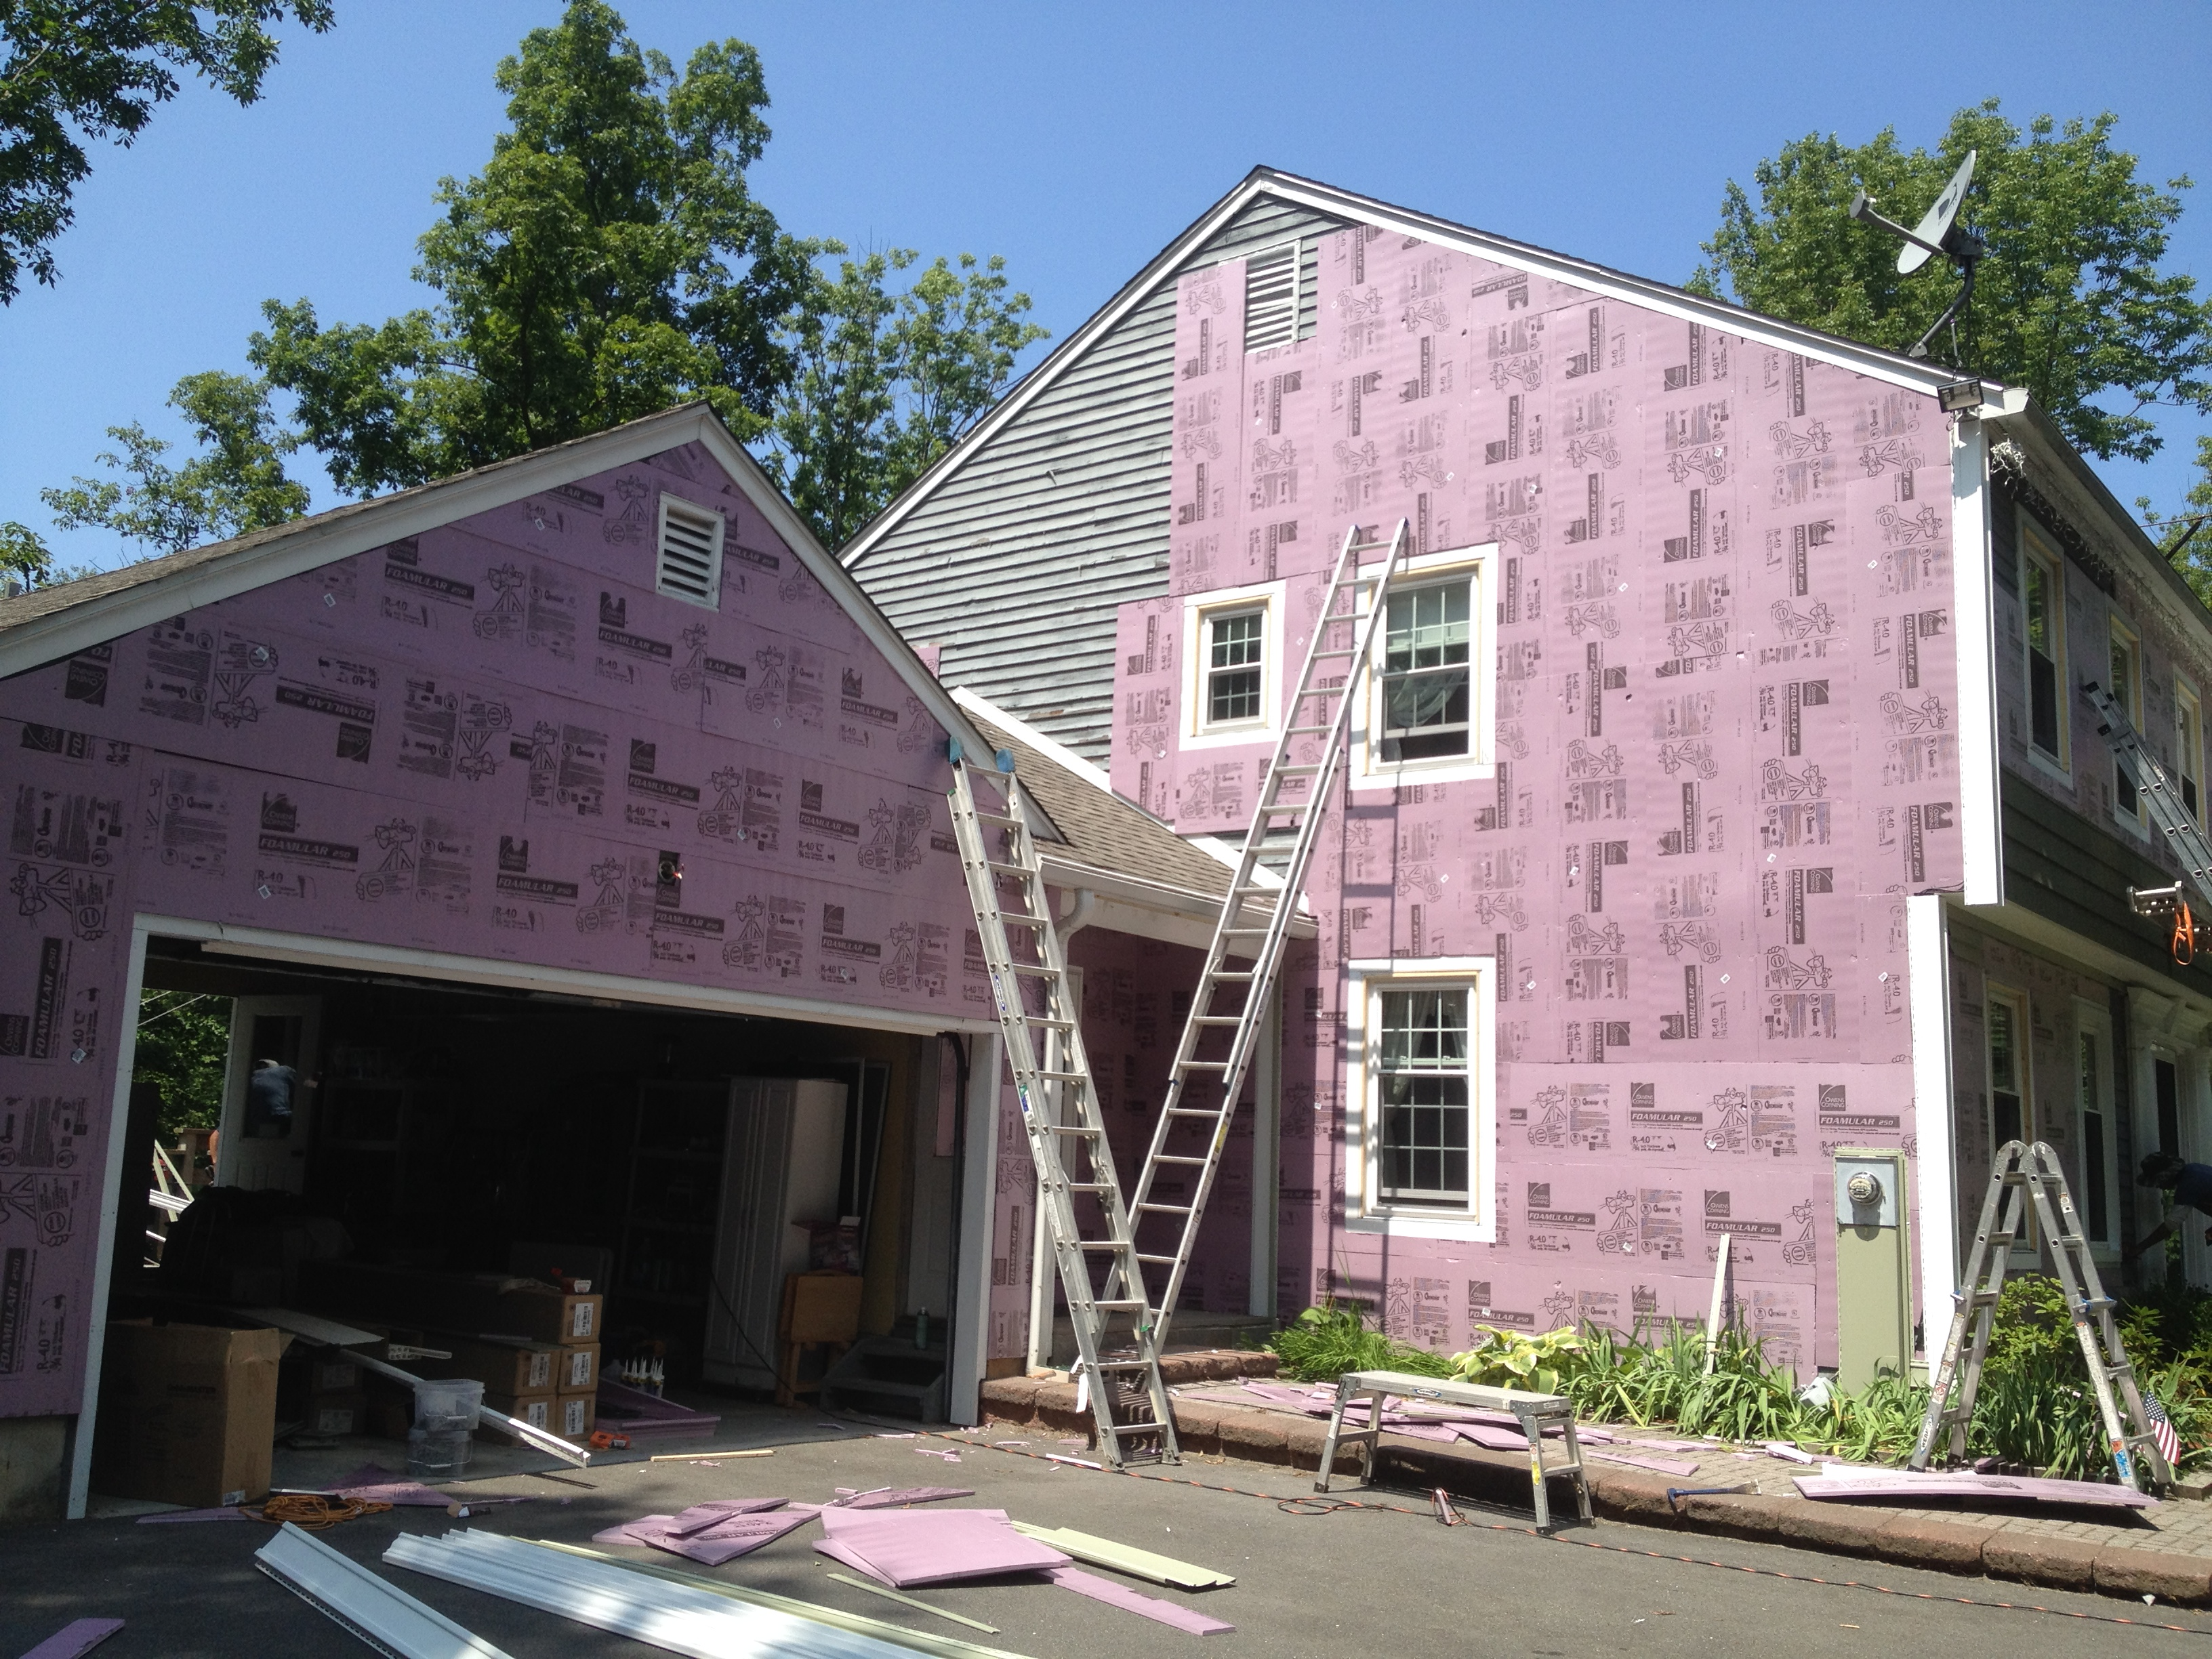 insulation, trim, siding, windows, labor, roofing